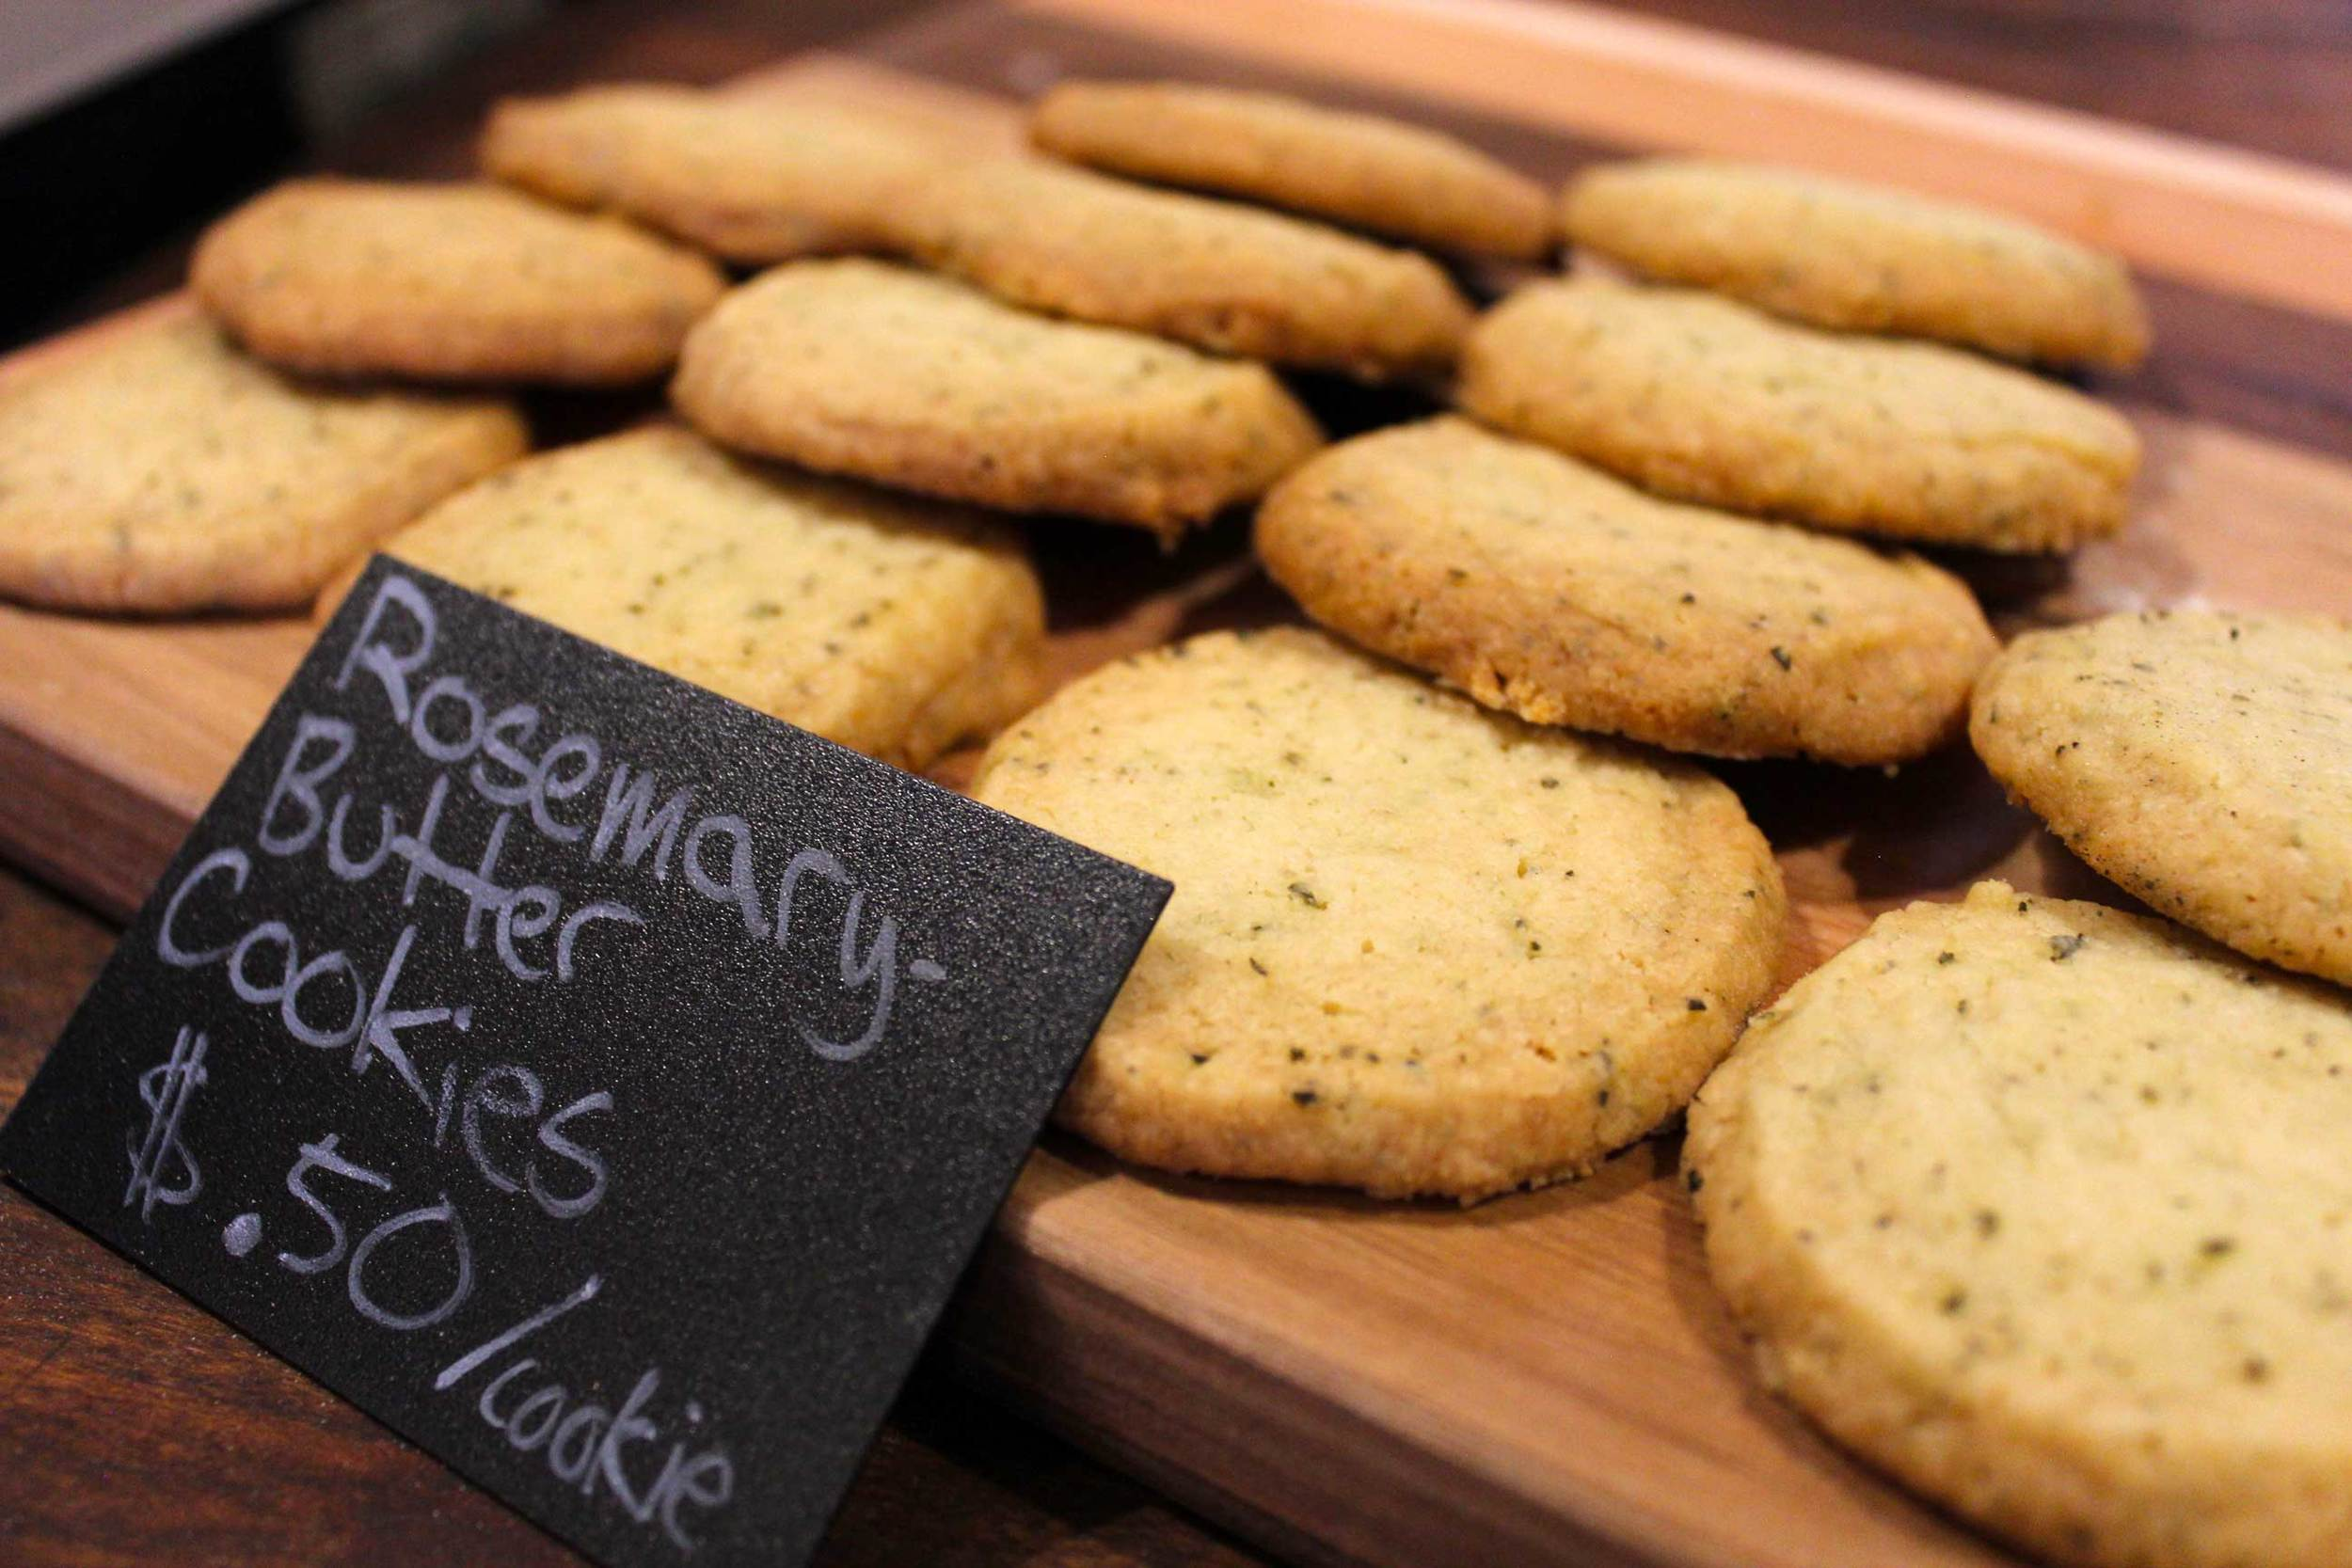 IMG_7095_Mtuccis_Rosemary-Butter-Cookies.jpg